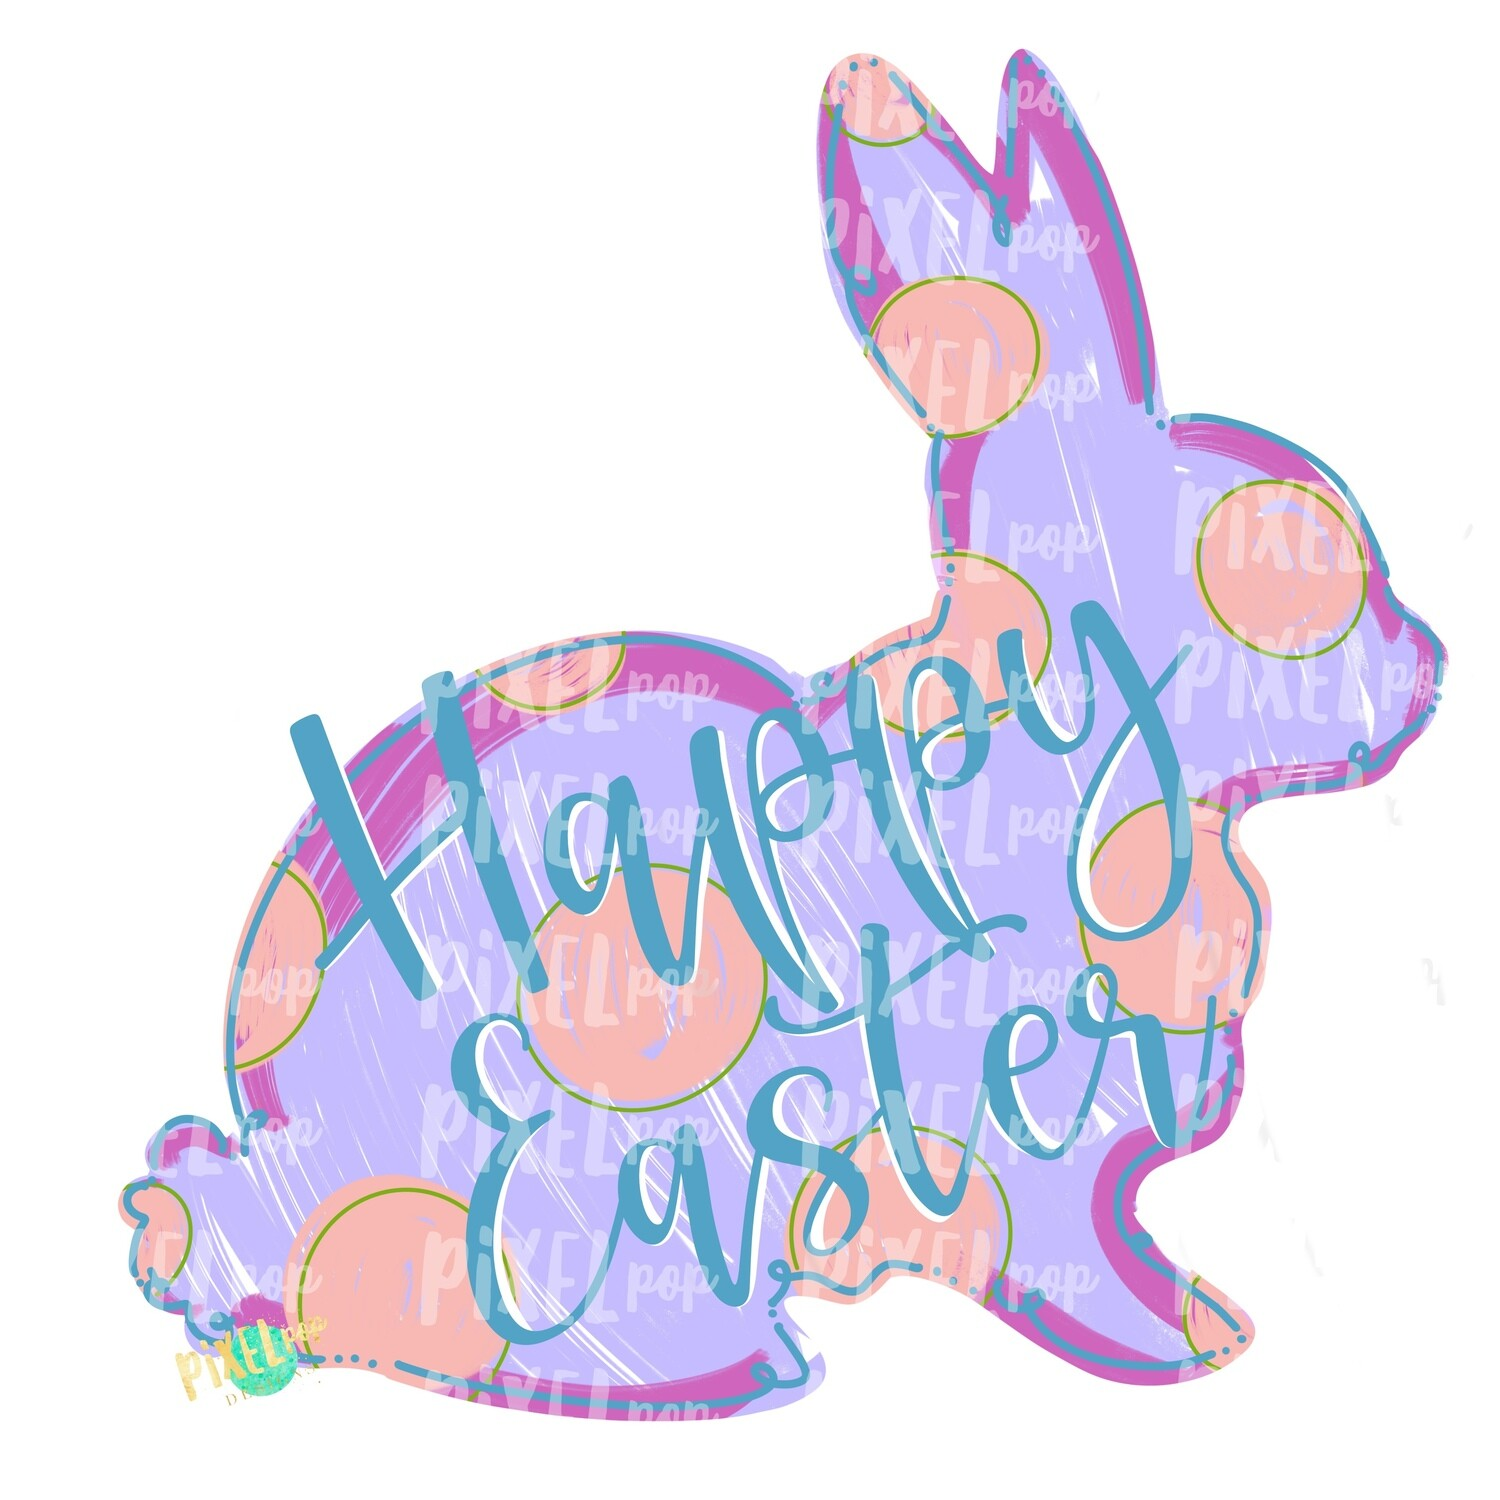 Happy Easter Bunny Polka Dot Silhouette PURPLE Sublimation PNG | Easter Art | Heat Transfer PNG | Digital Download | Printable | Digital Art